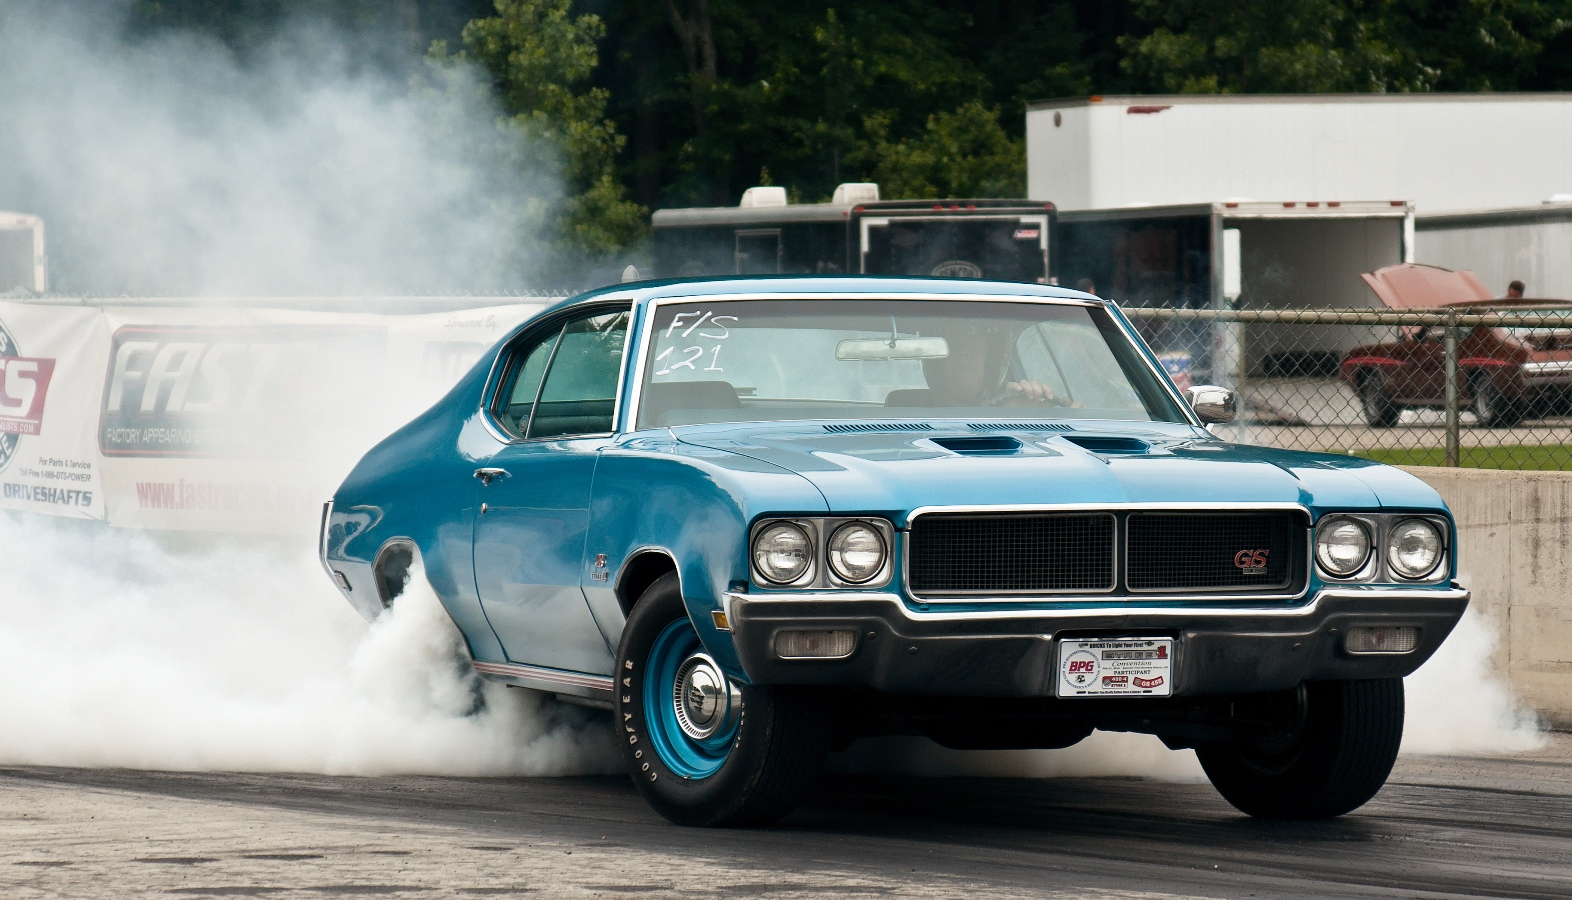 The True HP of the 10 Most Powerful Classic Era Muscle Cars